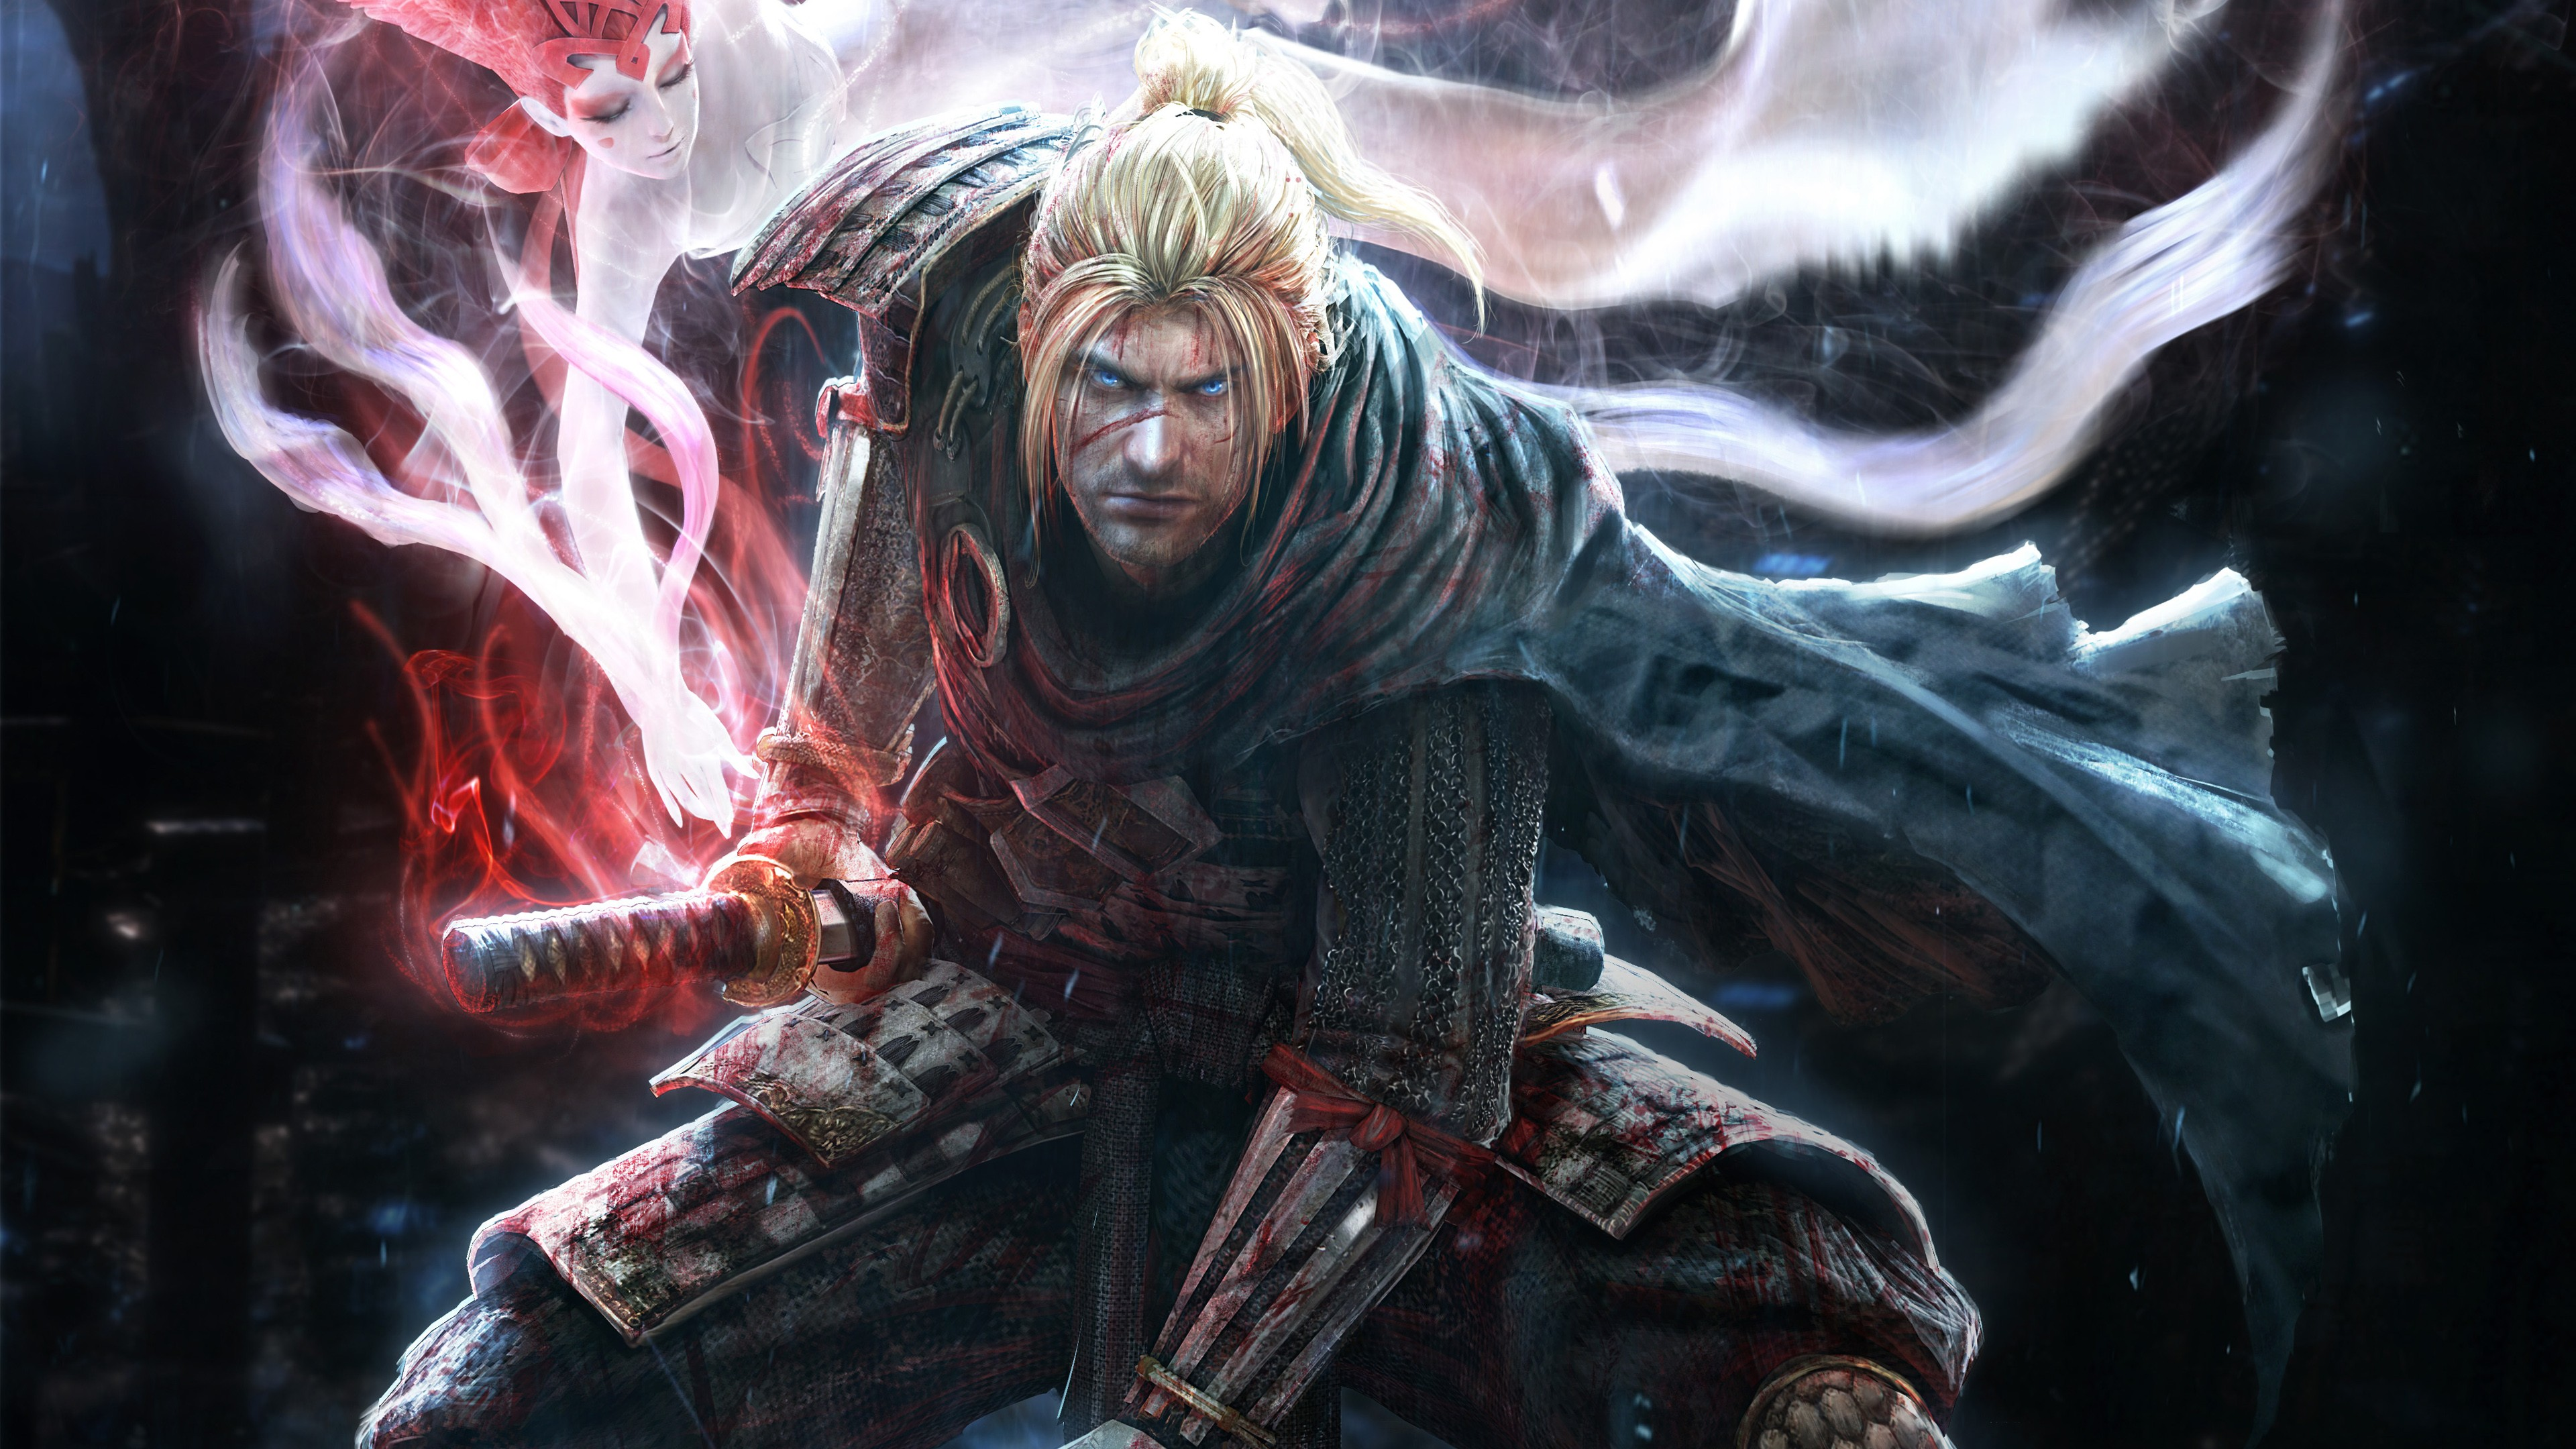 nioh game 1535966594 - Nioh Game - ps4 games wallpapers, ps games wallpapers, nioh wallpapers, games wallpapers, 2016 games wallpapers